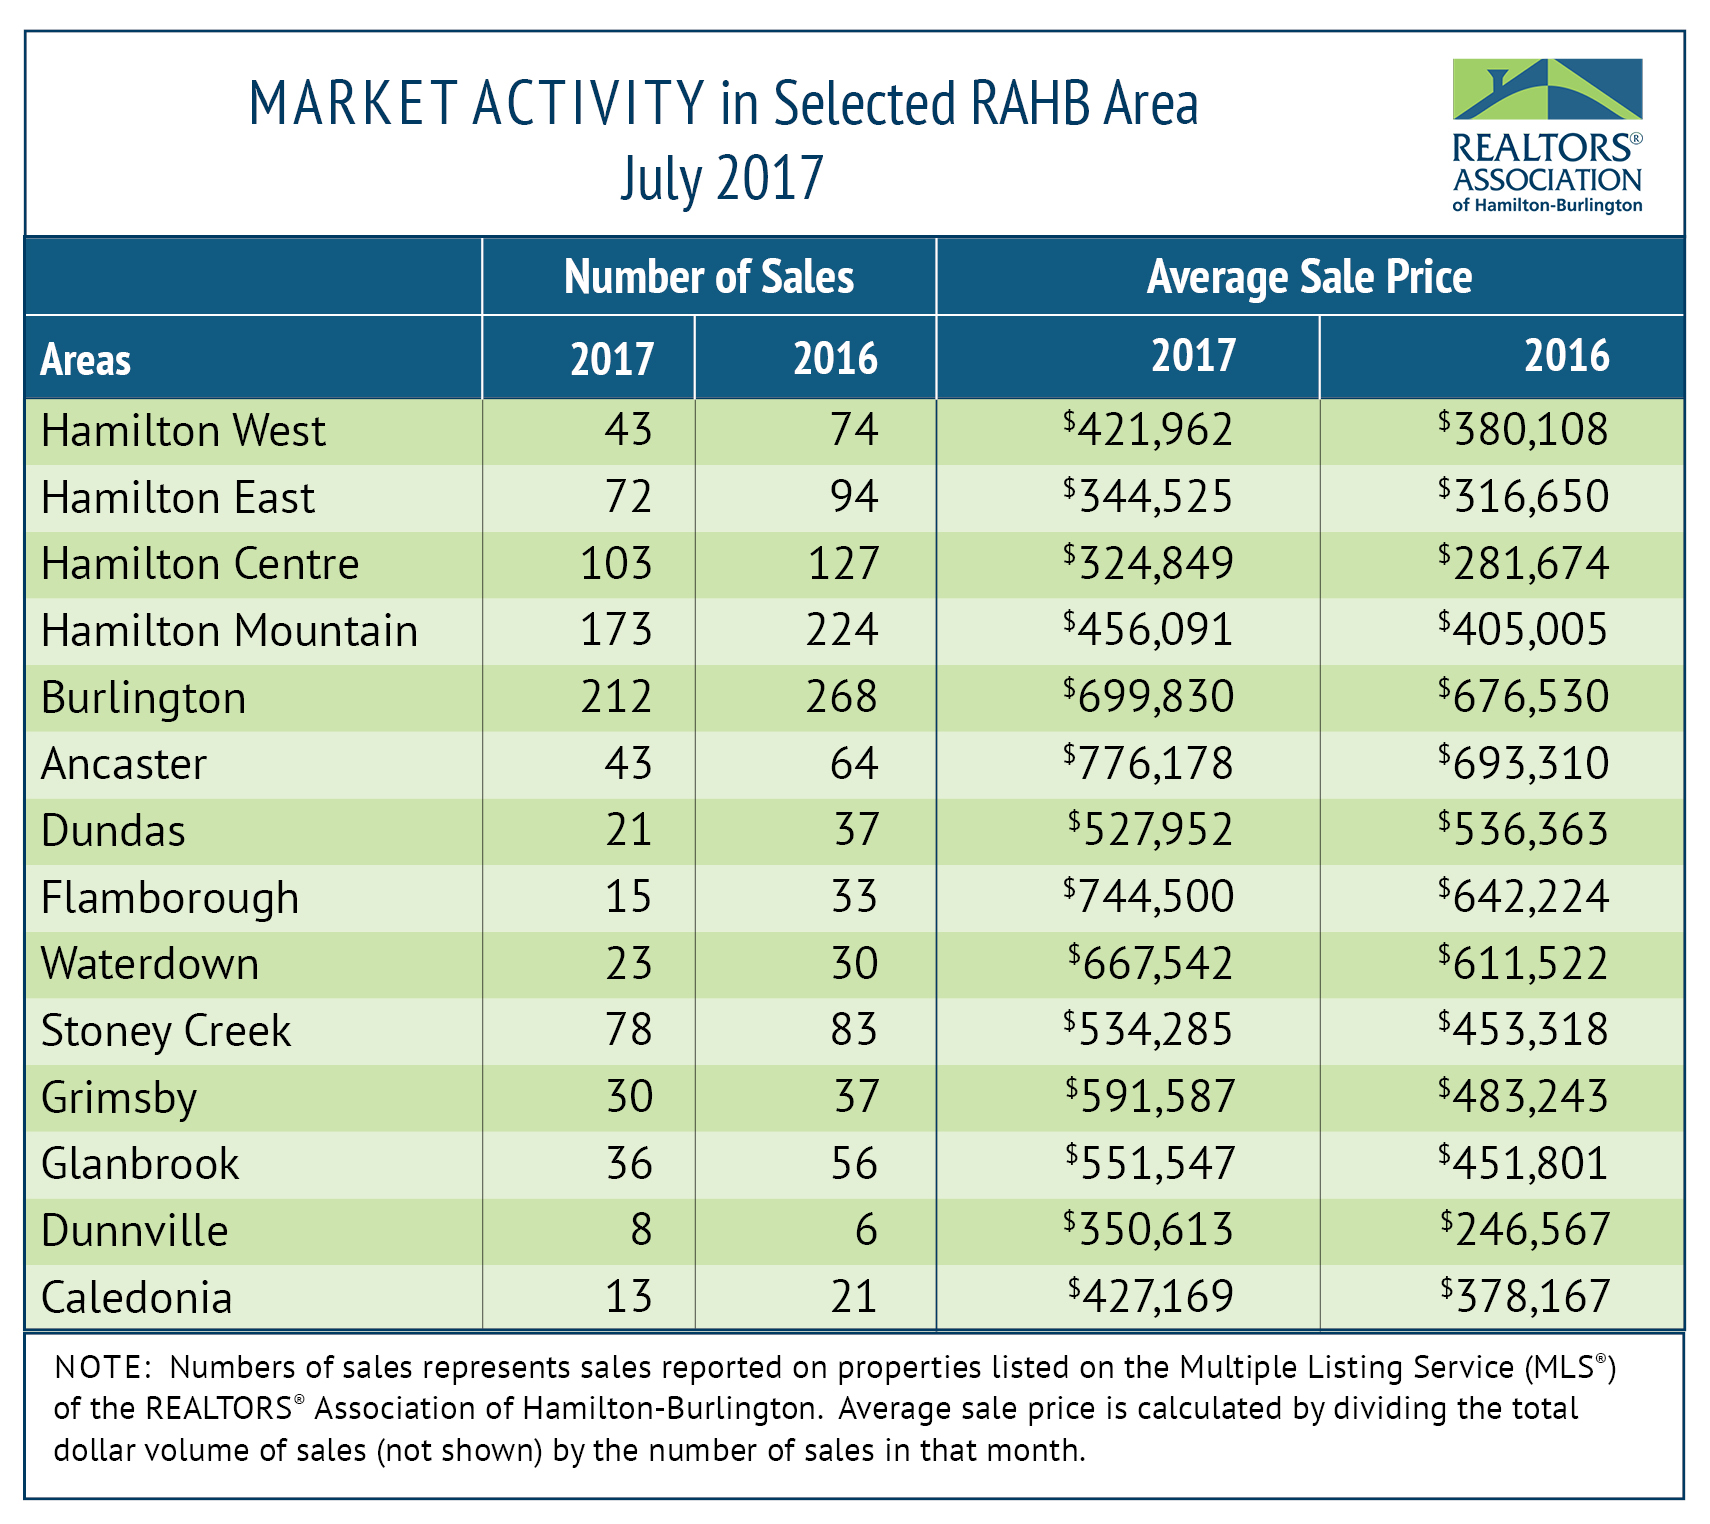 RAHB Market Activity for July 2017